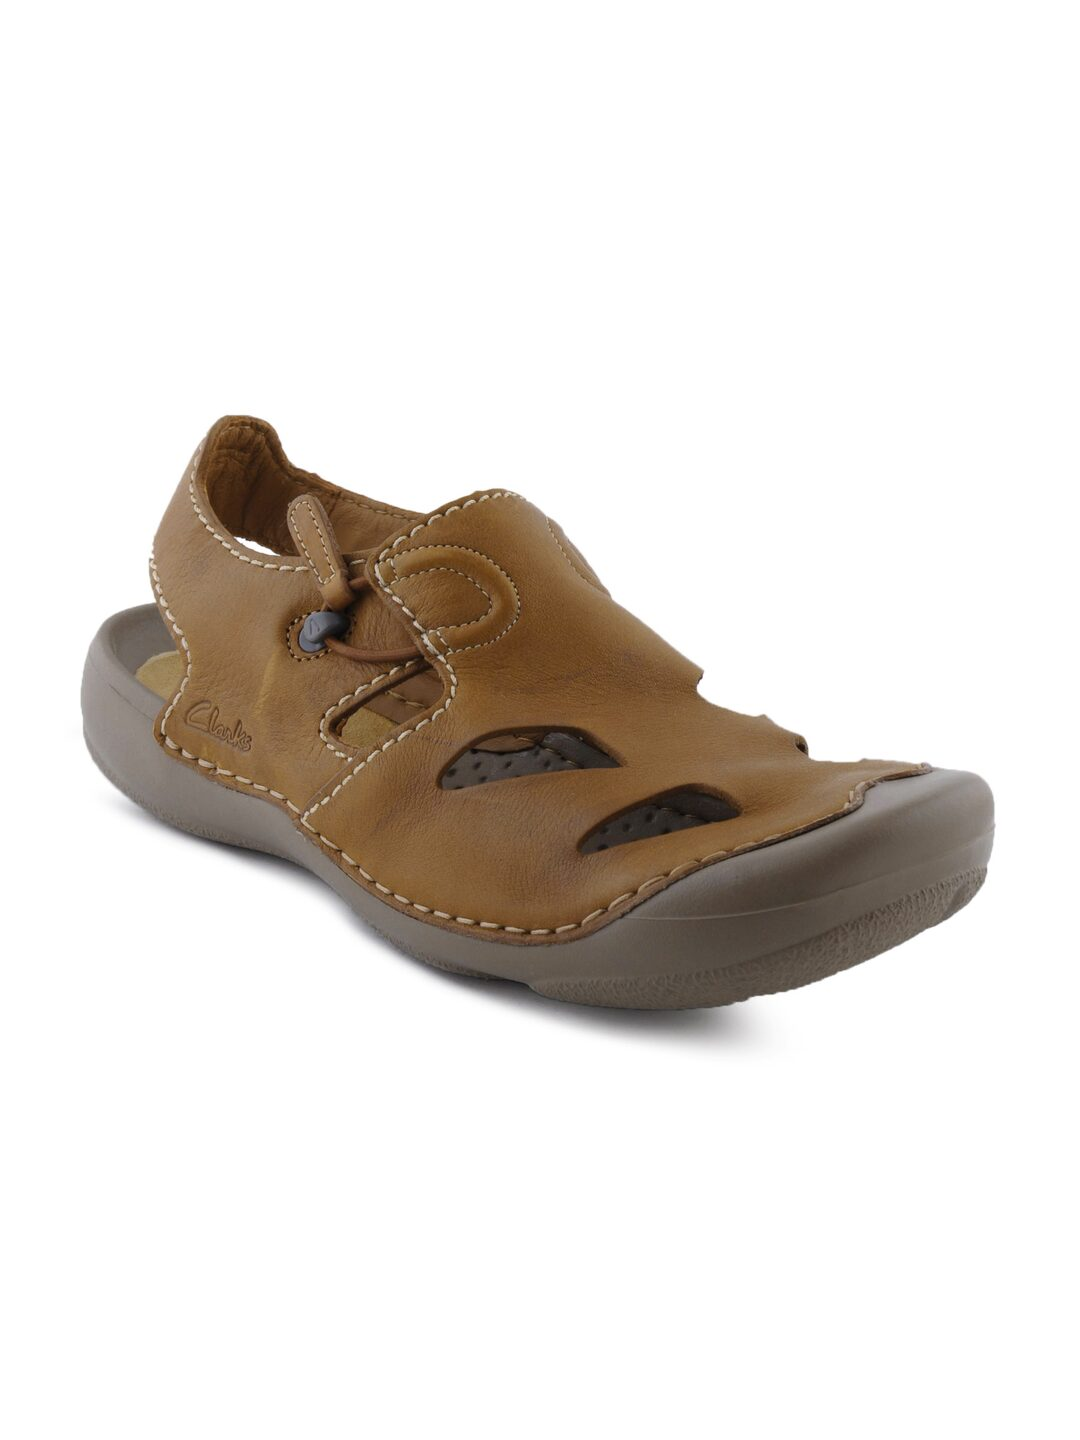 f3d642e86 Clarks 5050406017886 Chestnut Leather Sandals Floaters - Best Price ...